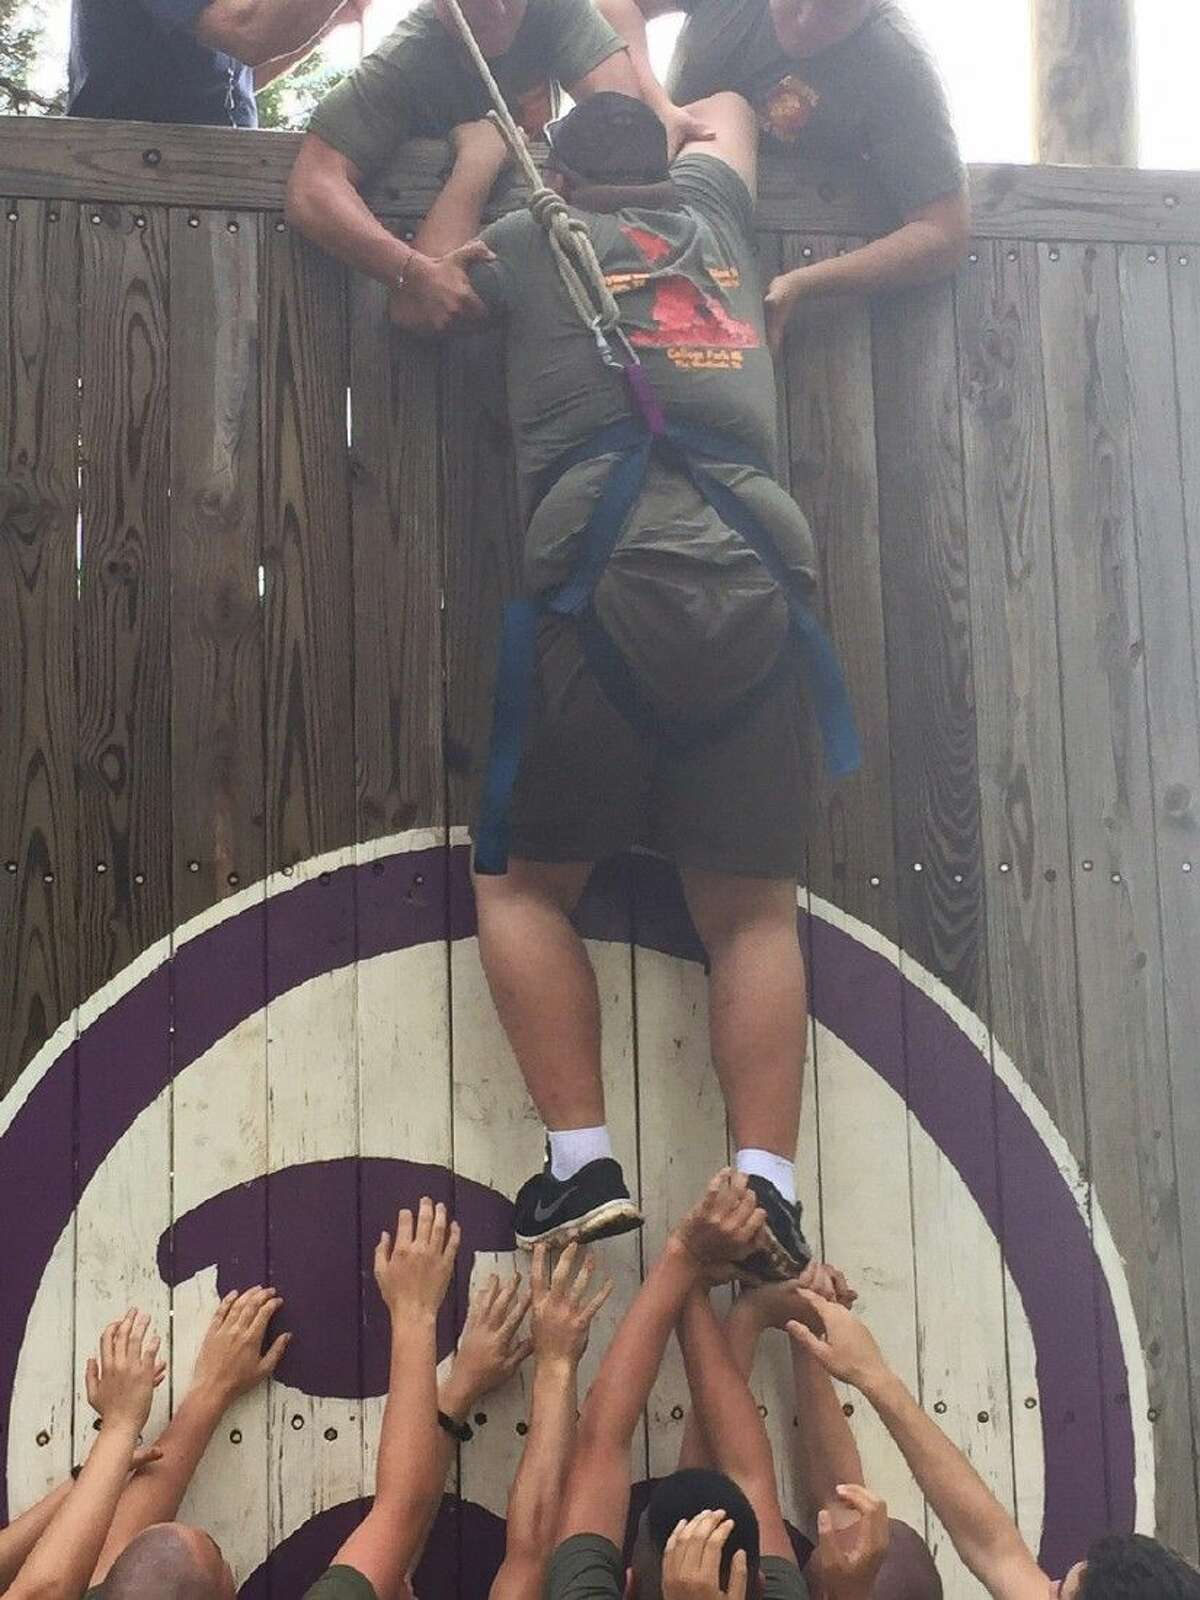 Cadet Corporal Arrizoloa scales a wall during a team-building exercise at the JROTC Cadet Leadership Camp in New Braunfels, Texas.